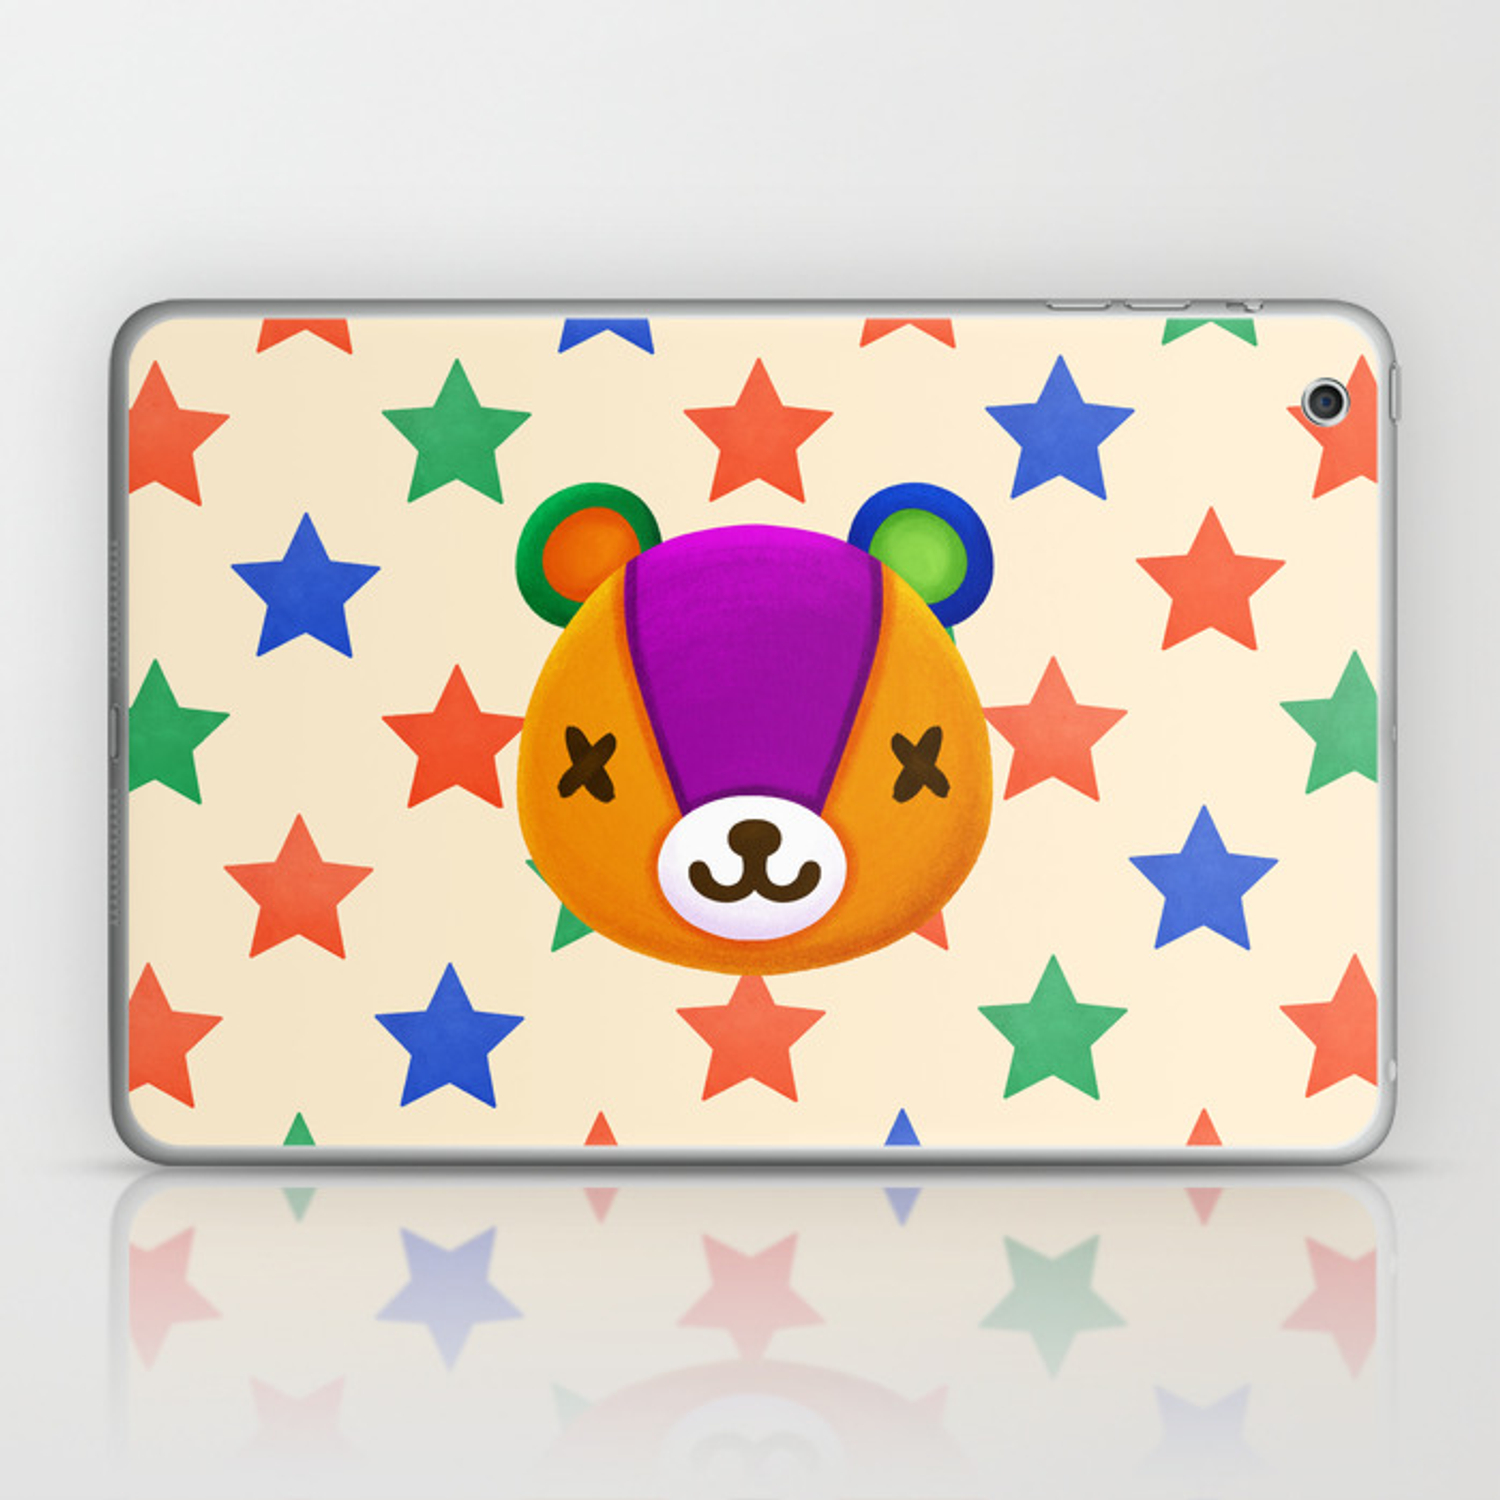 Stitches Animal Crossing Laptop Ipad Skin By Scribblemonkey